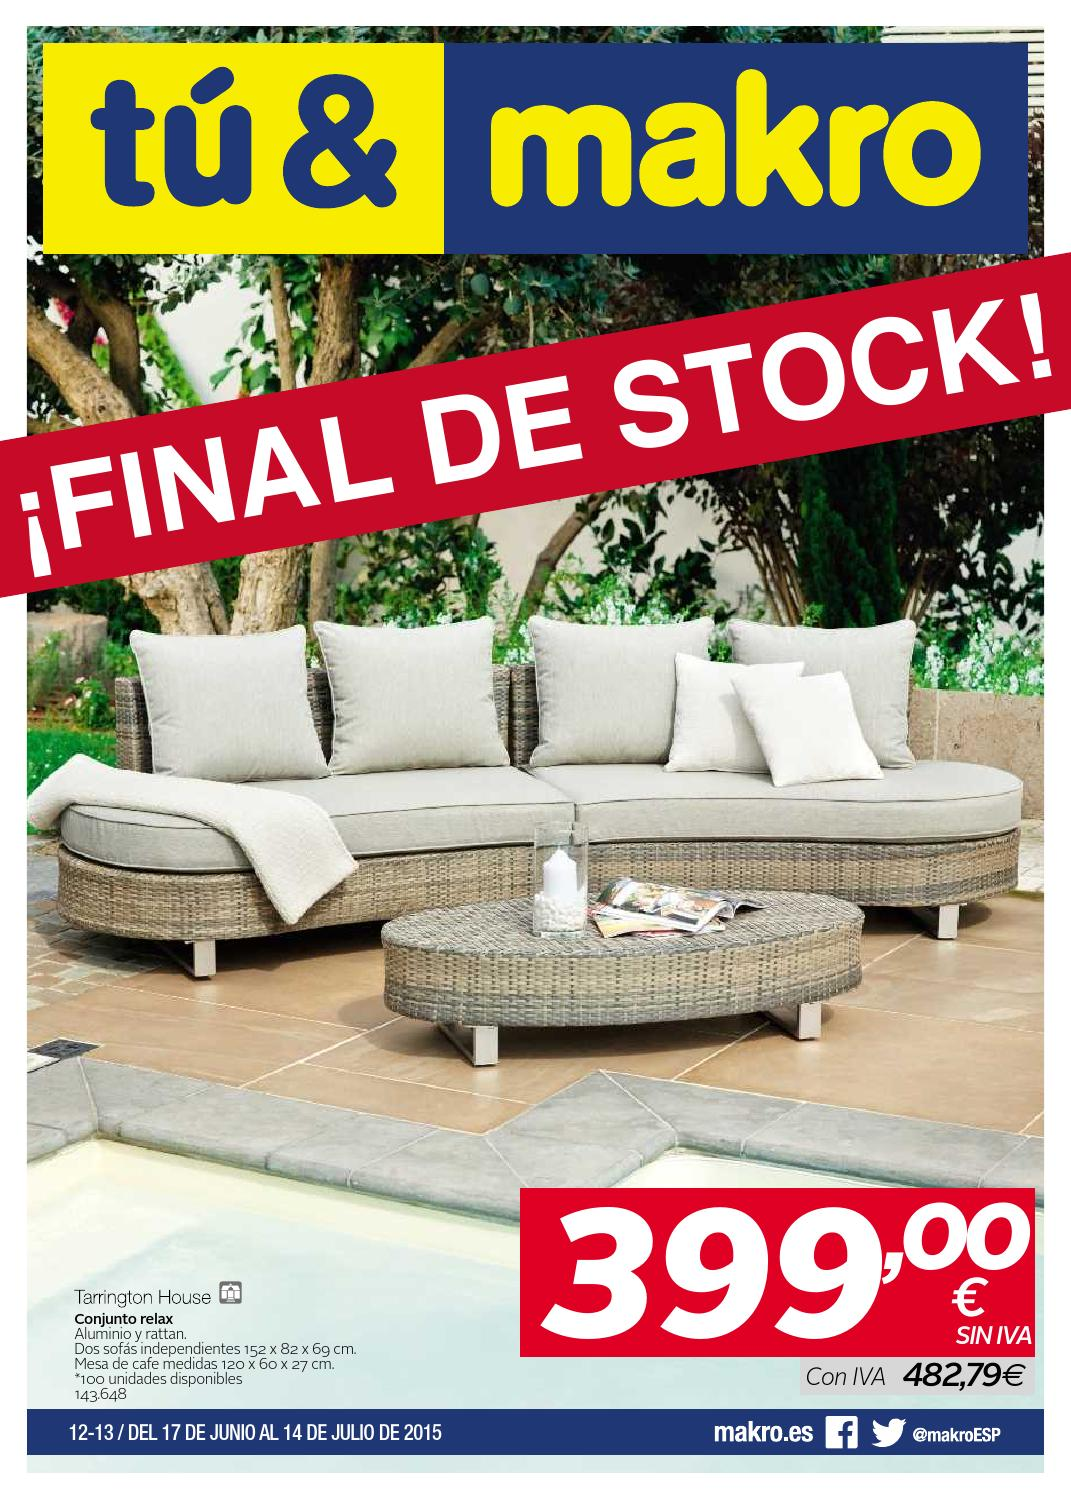 Makro espana ofertas final de stock peninsula by for Muebles jardin makro